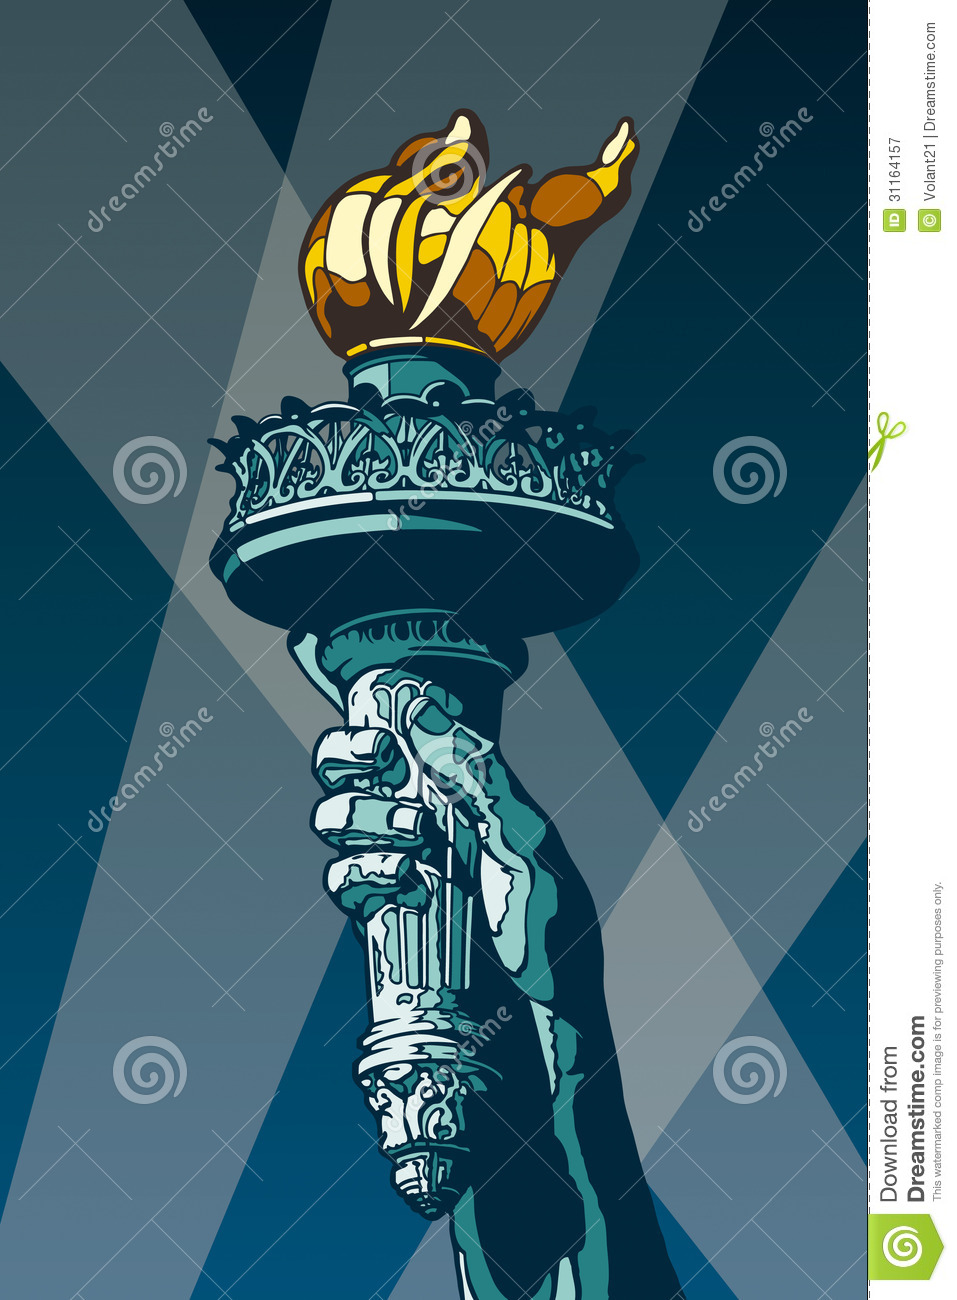 key symbol statue of liberty The statue of liberty was s gift from french freemasons to the united states is the statue of liberty an illuminati symbol 47  illuminati symbols.